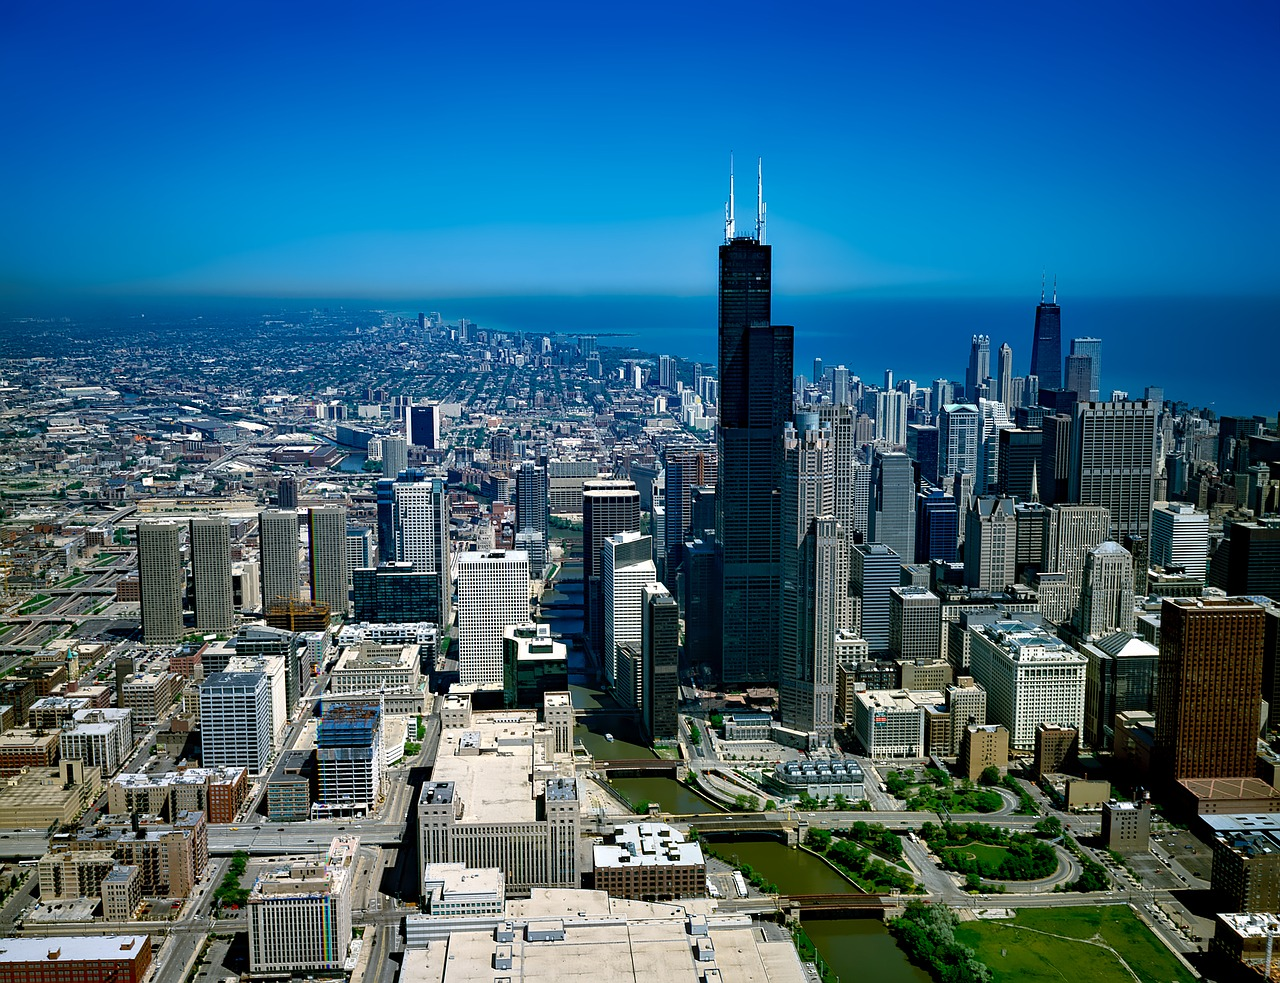 The Willis Tower in Chicago, Illinois, standing next to other buildings and a blue sky in the background